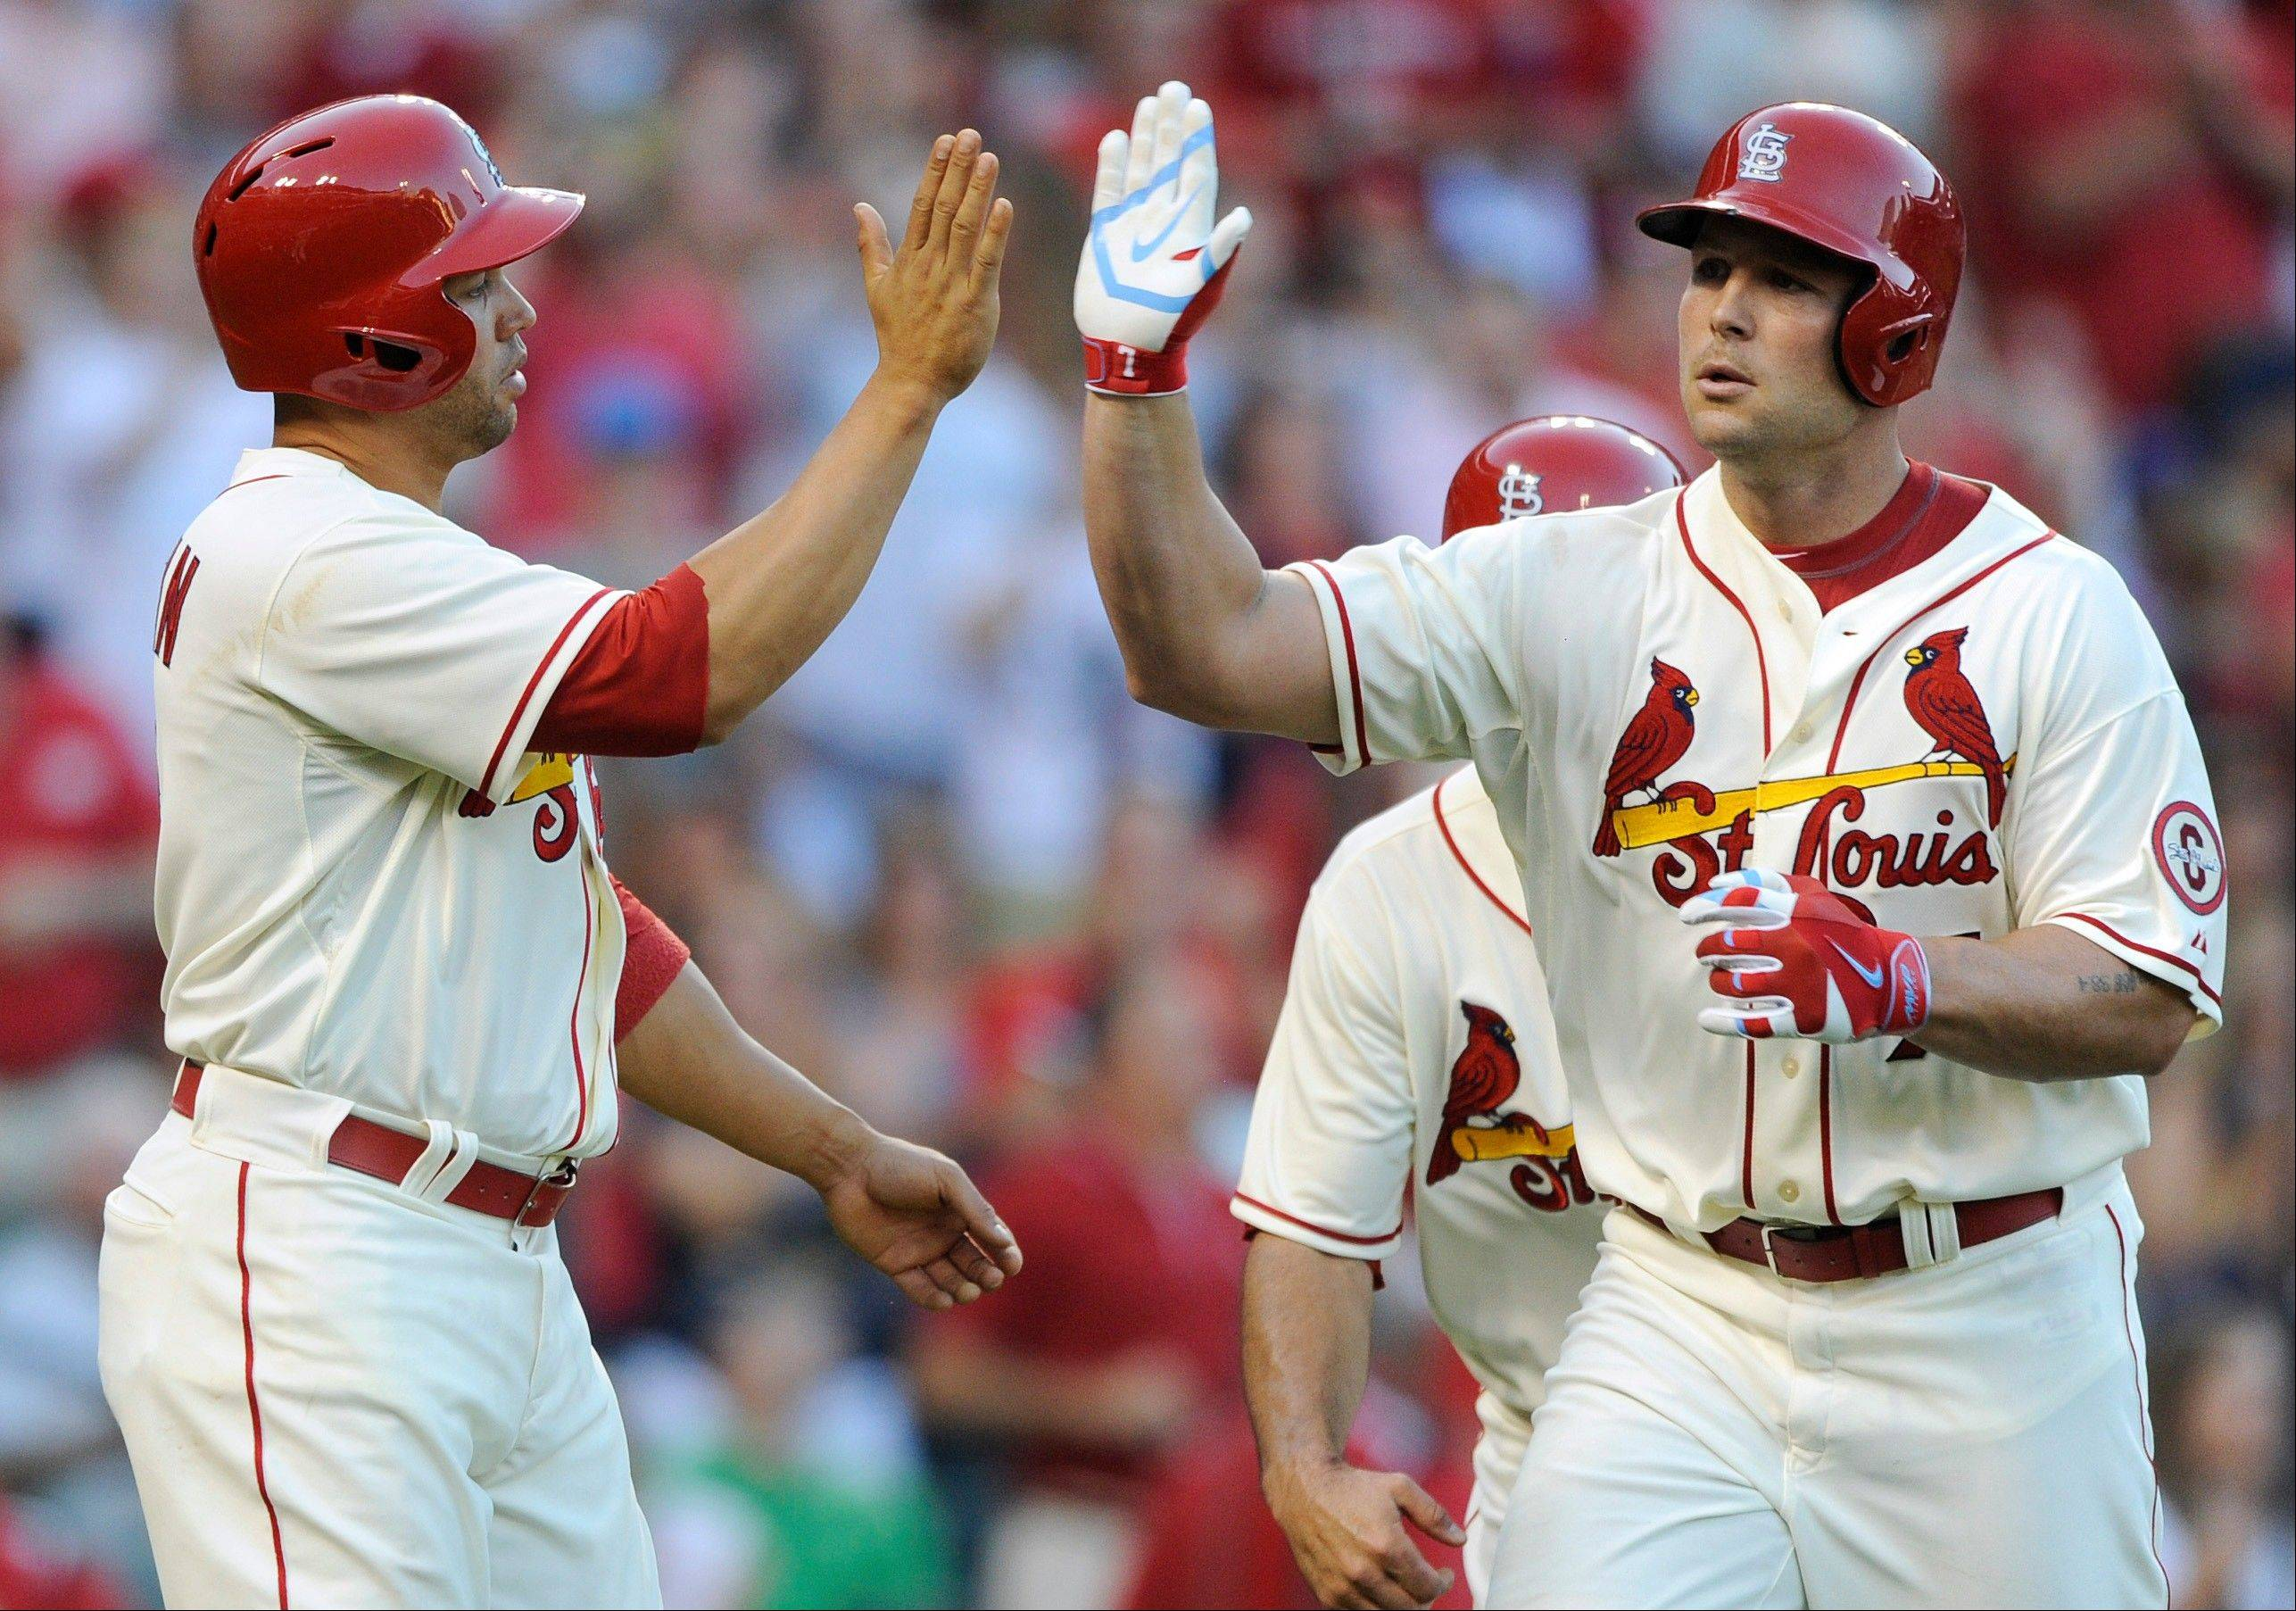 St. Louis Cardinals' Matt Holliday, right, is congratulated by Carlos Beltran, after his 3-run home run against the Cubs in the fourth inning Saturday.